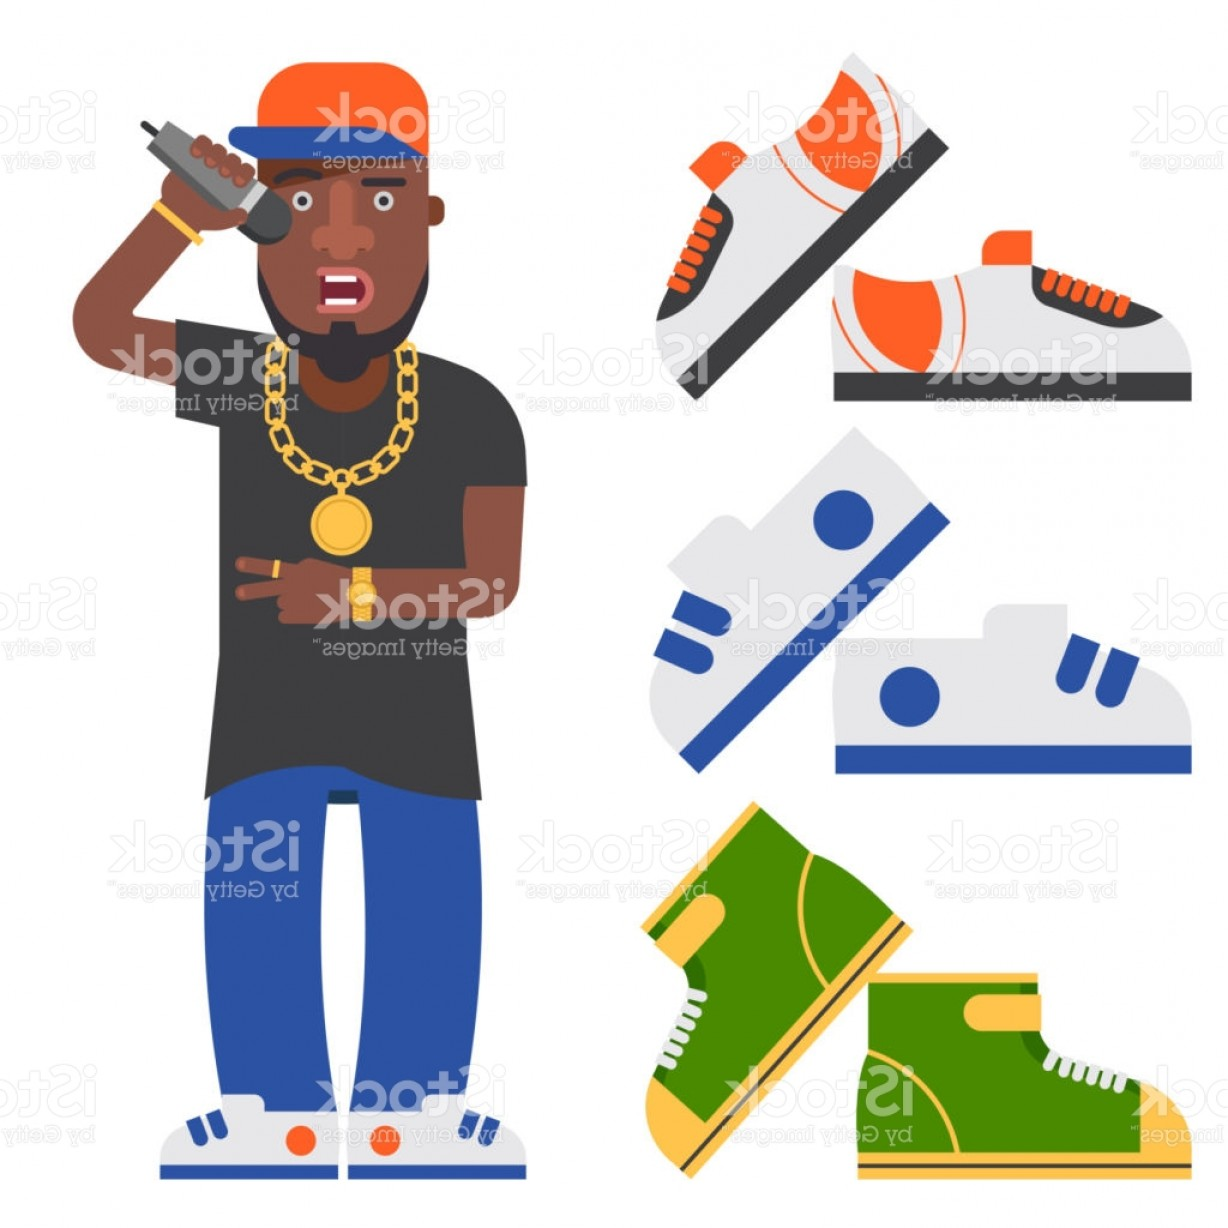 Musician Person Vector: Hip Hop Man Accessory Musician Vector Accessories Microphone Breakdance Expressive Gm